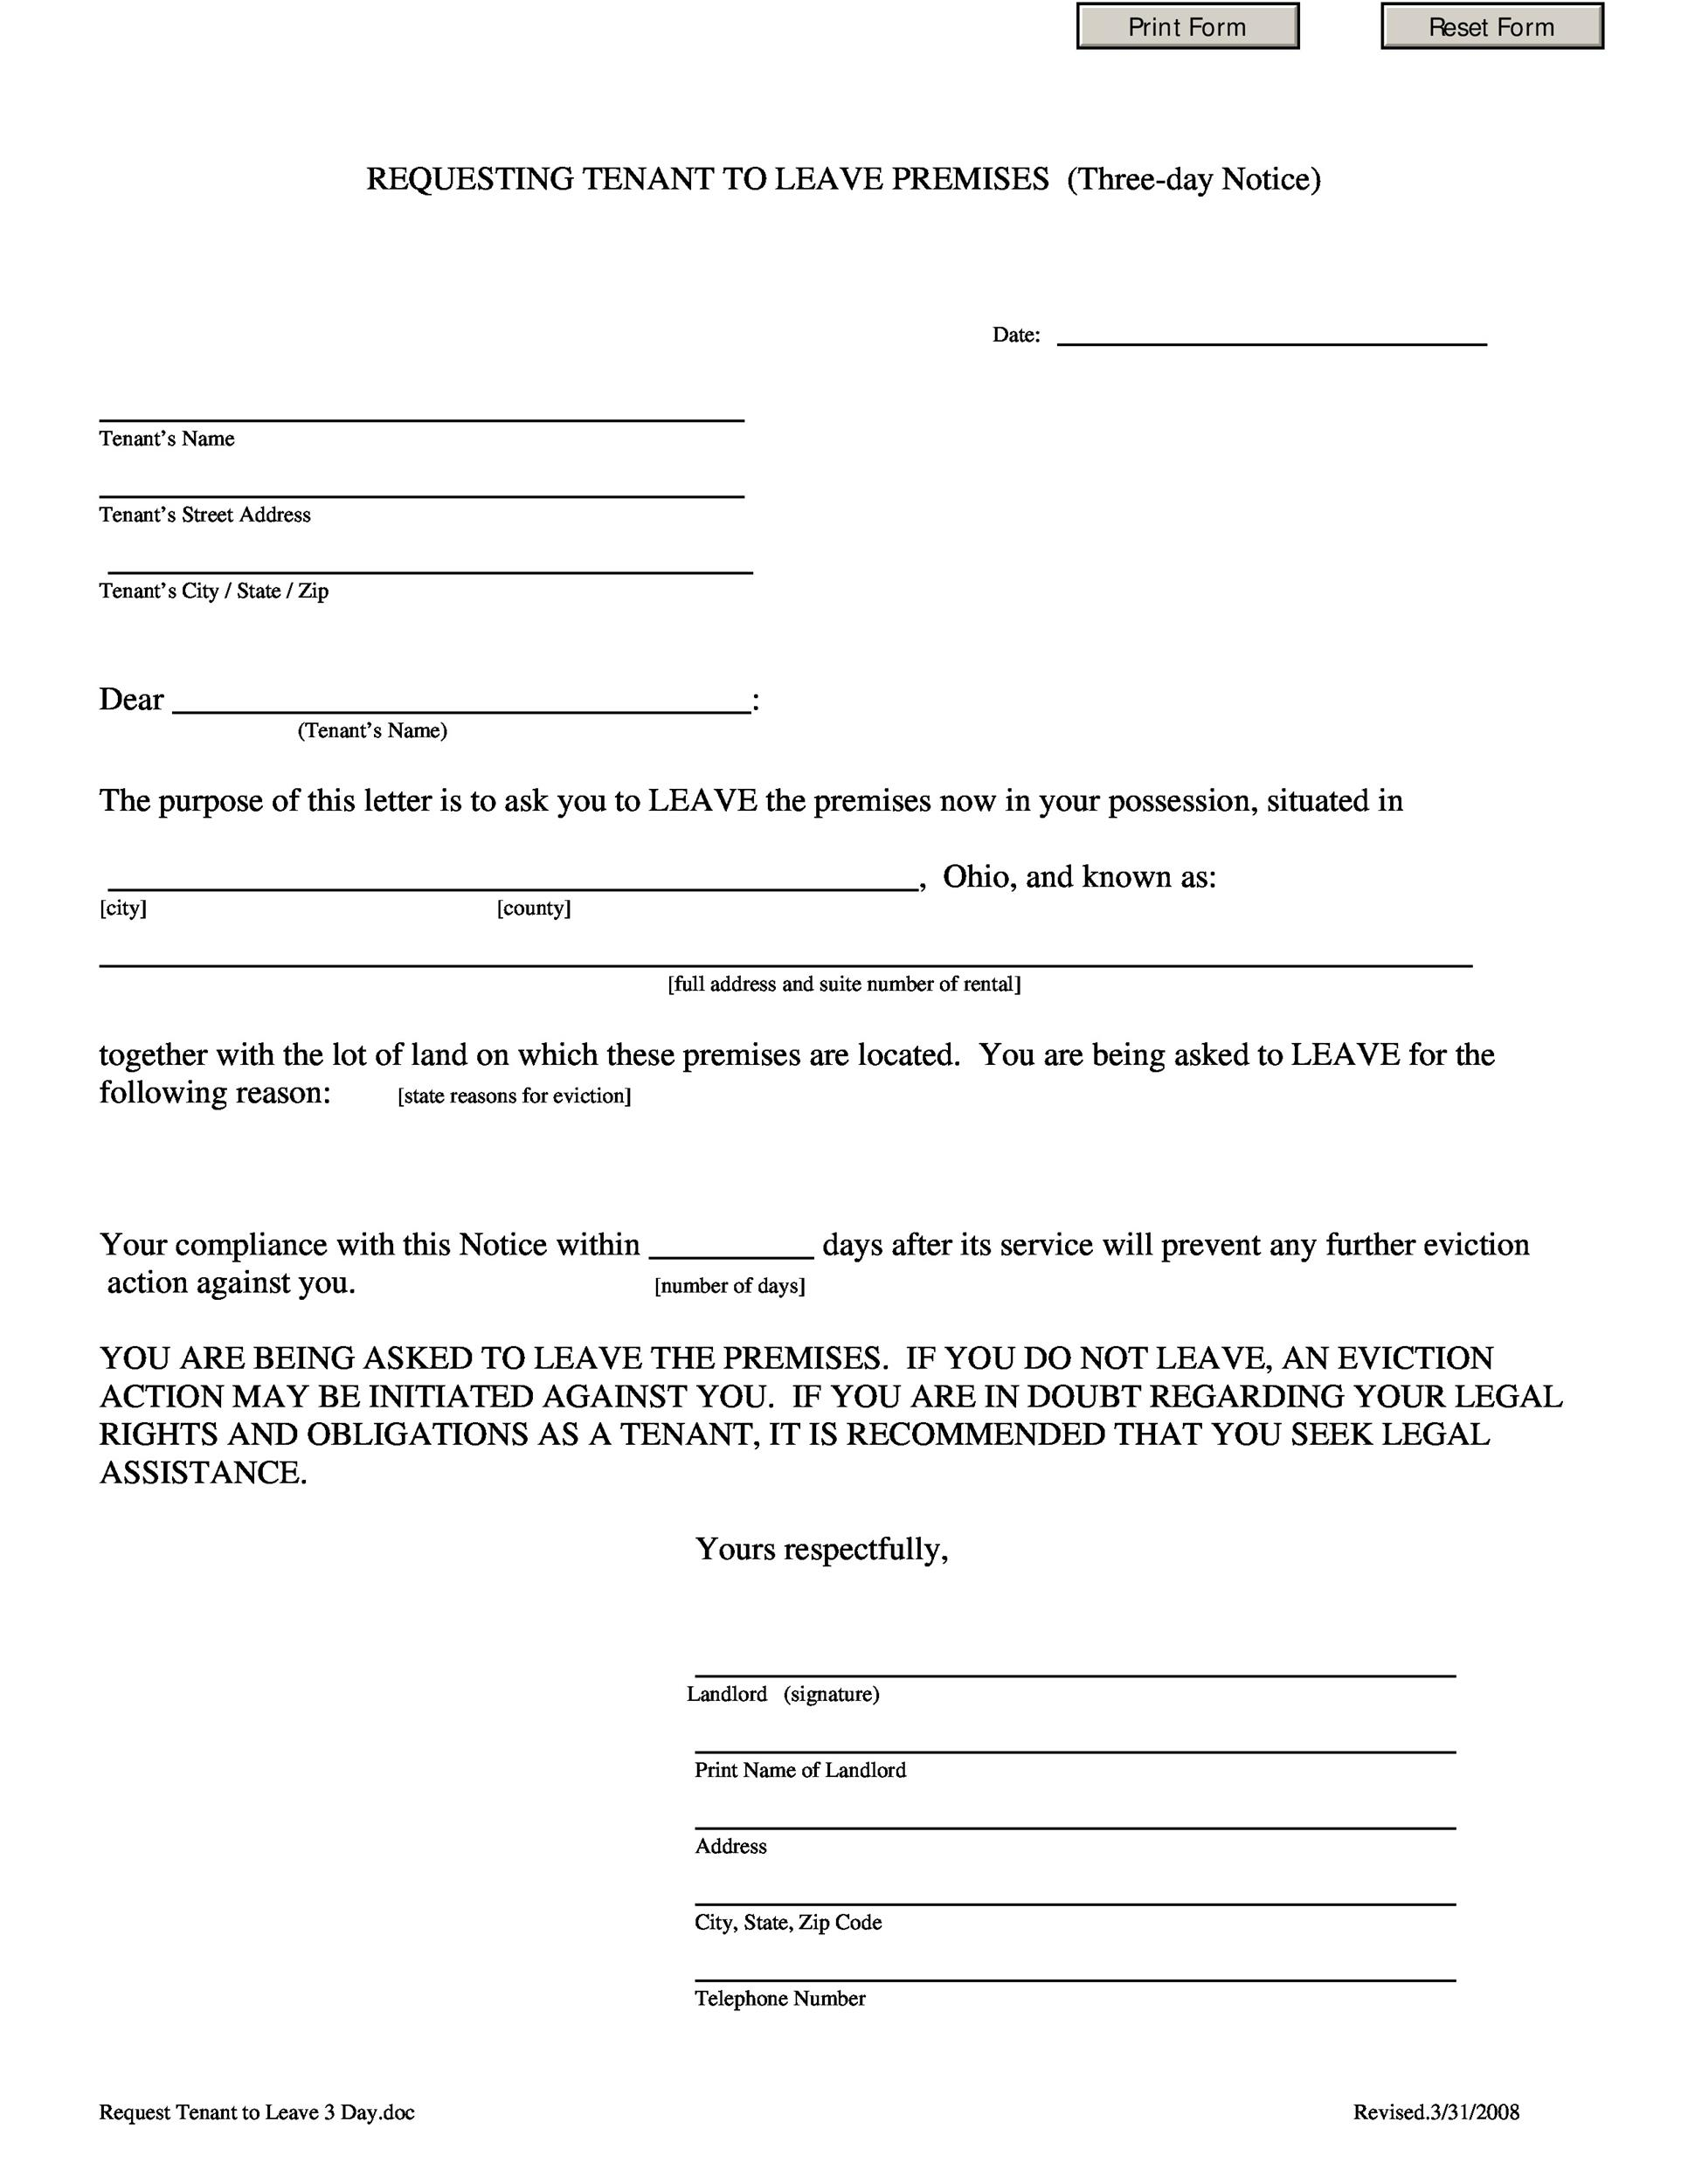 45 eviction notice templates lease termination letters printable requesting tenant to leave premises spiritdancerdesigns